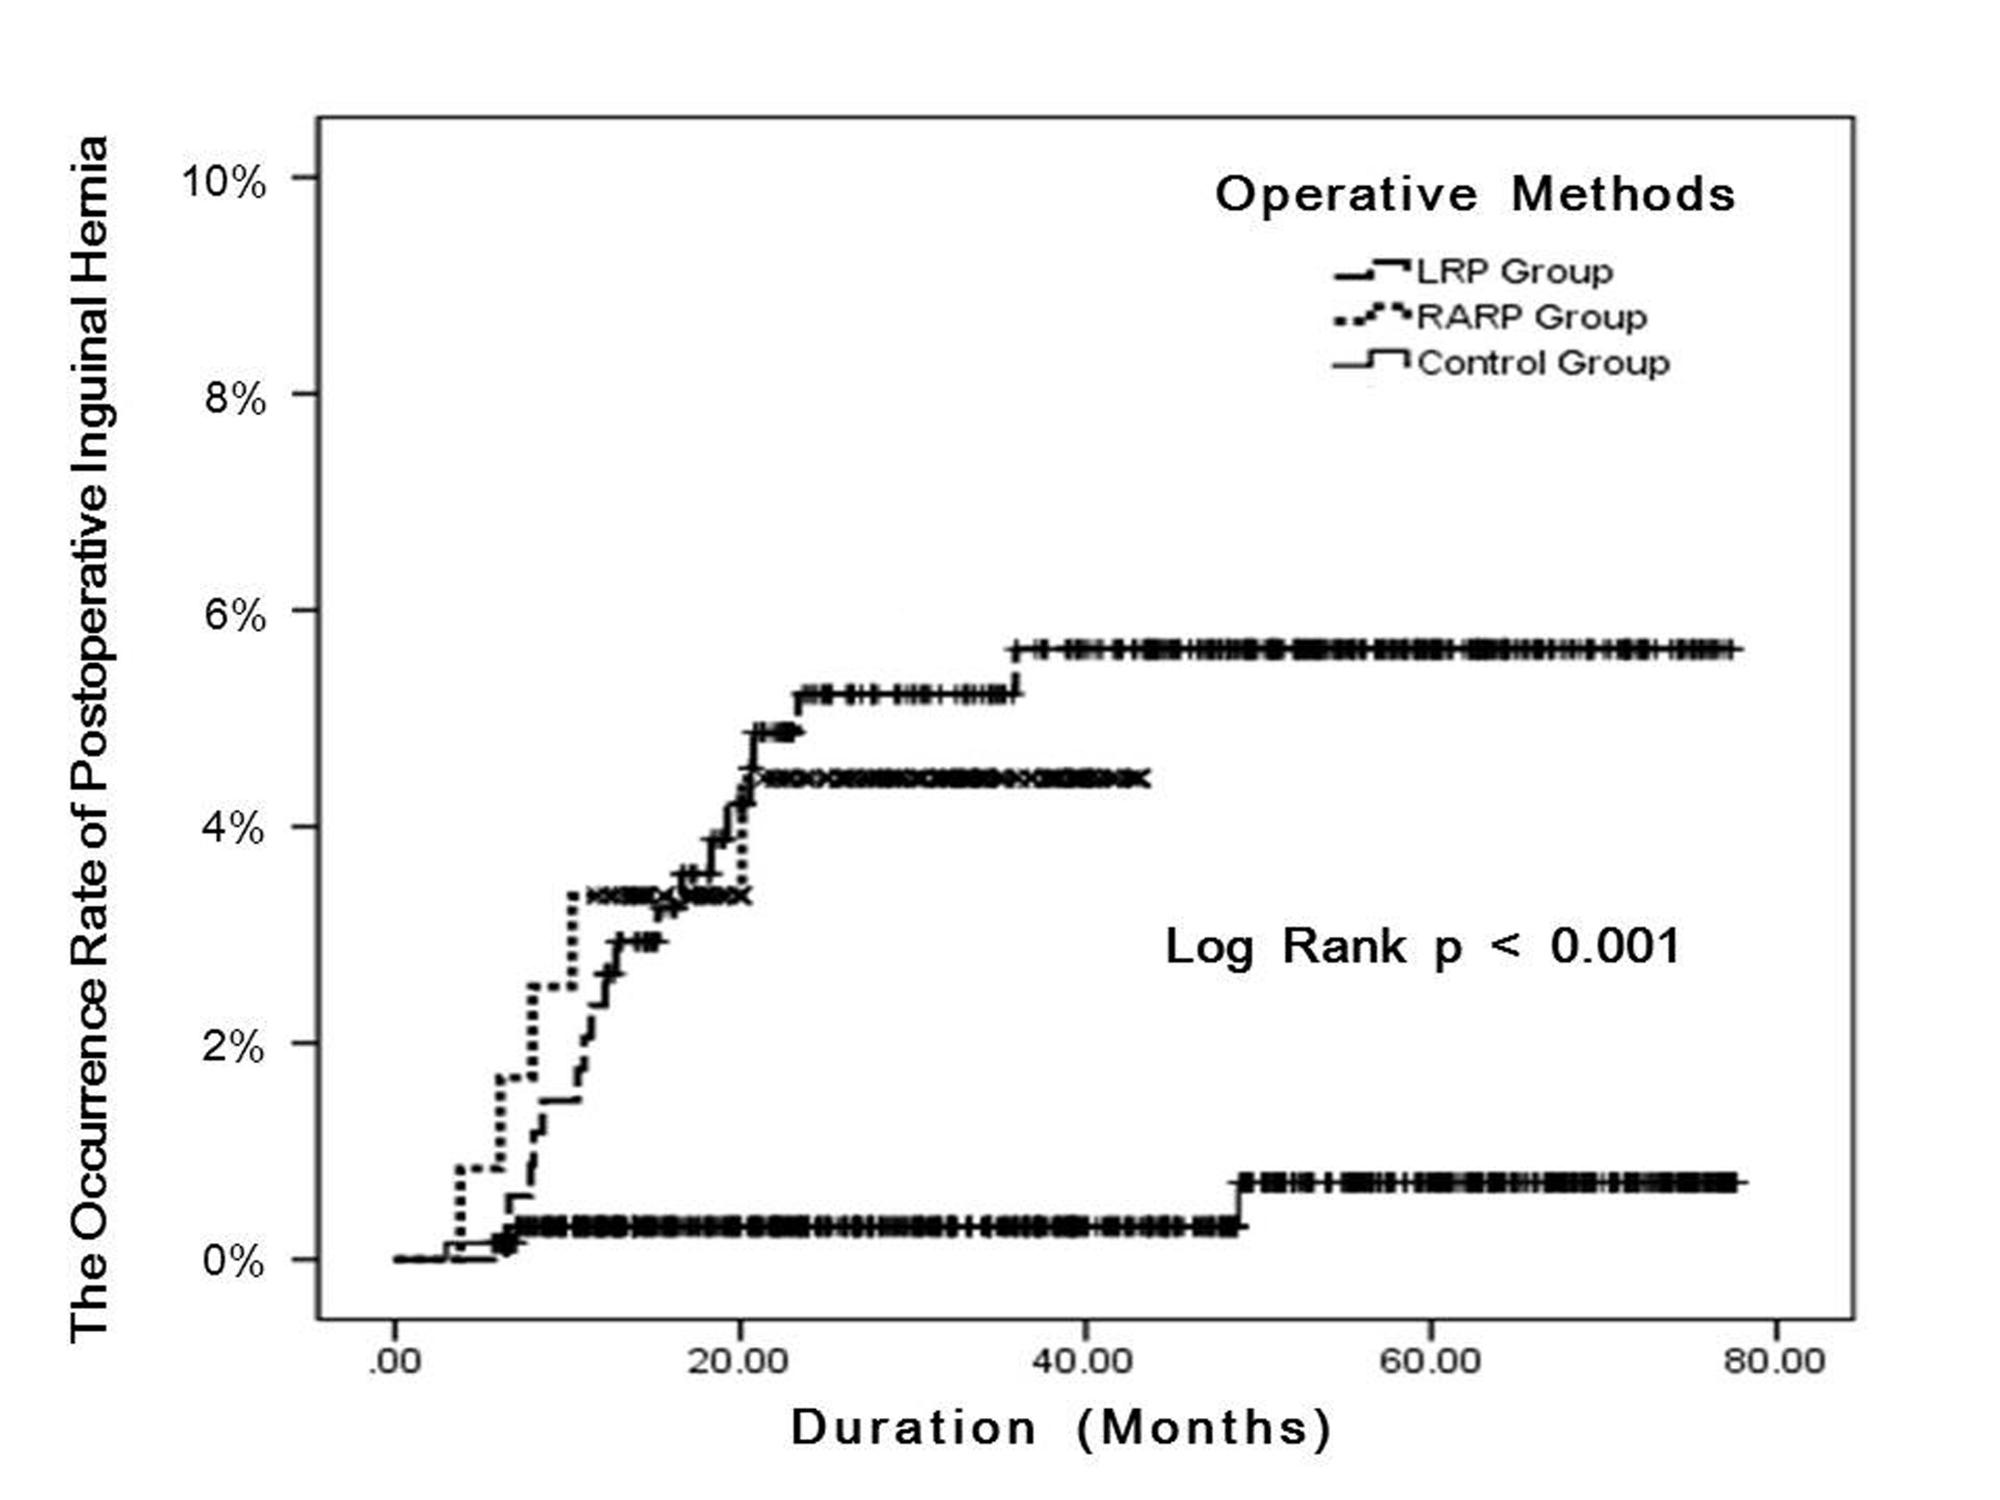 The occurrence rate of postoperative inguinal hernia in the laparoscopic radical prostatectomy (LRP), robot-assisted laparoscopic radical prostatectomy (RARP), and transurethral resection of bladder tumor (TURBT) patients as estimated using the Kaplan–Meier method.